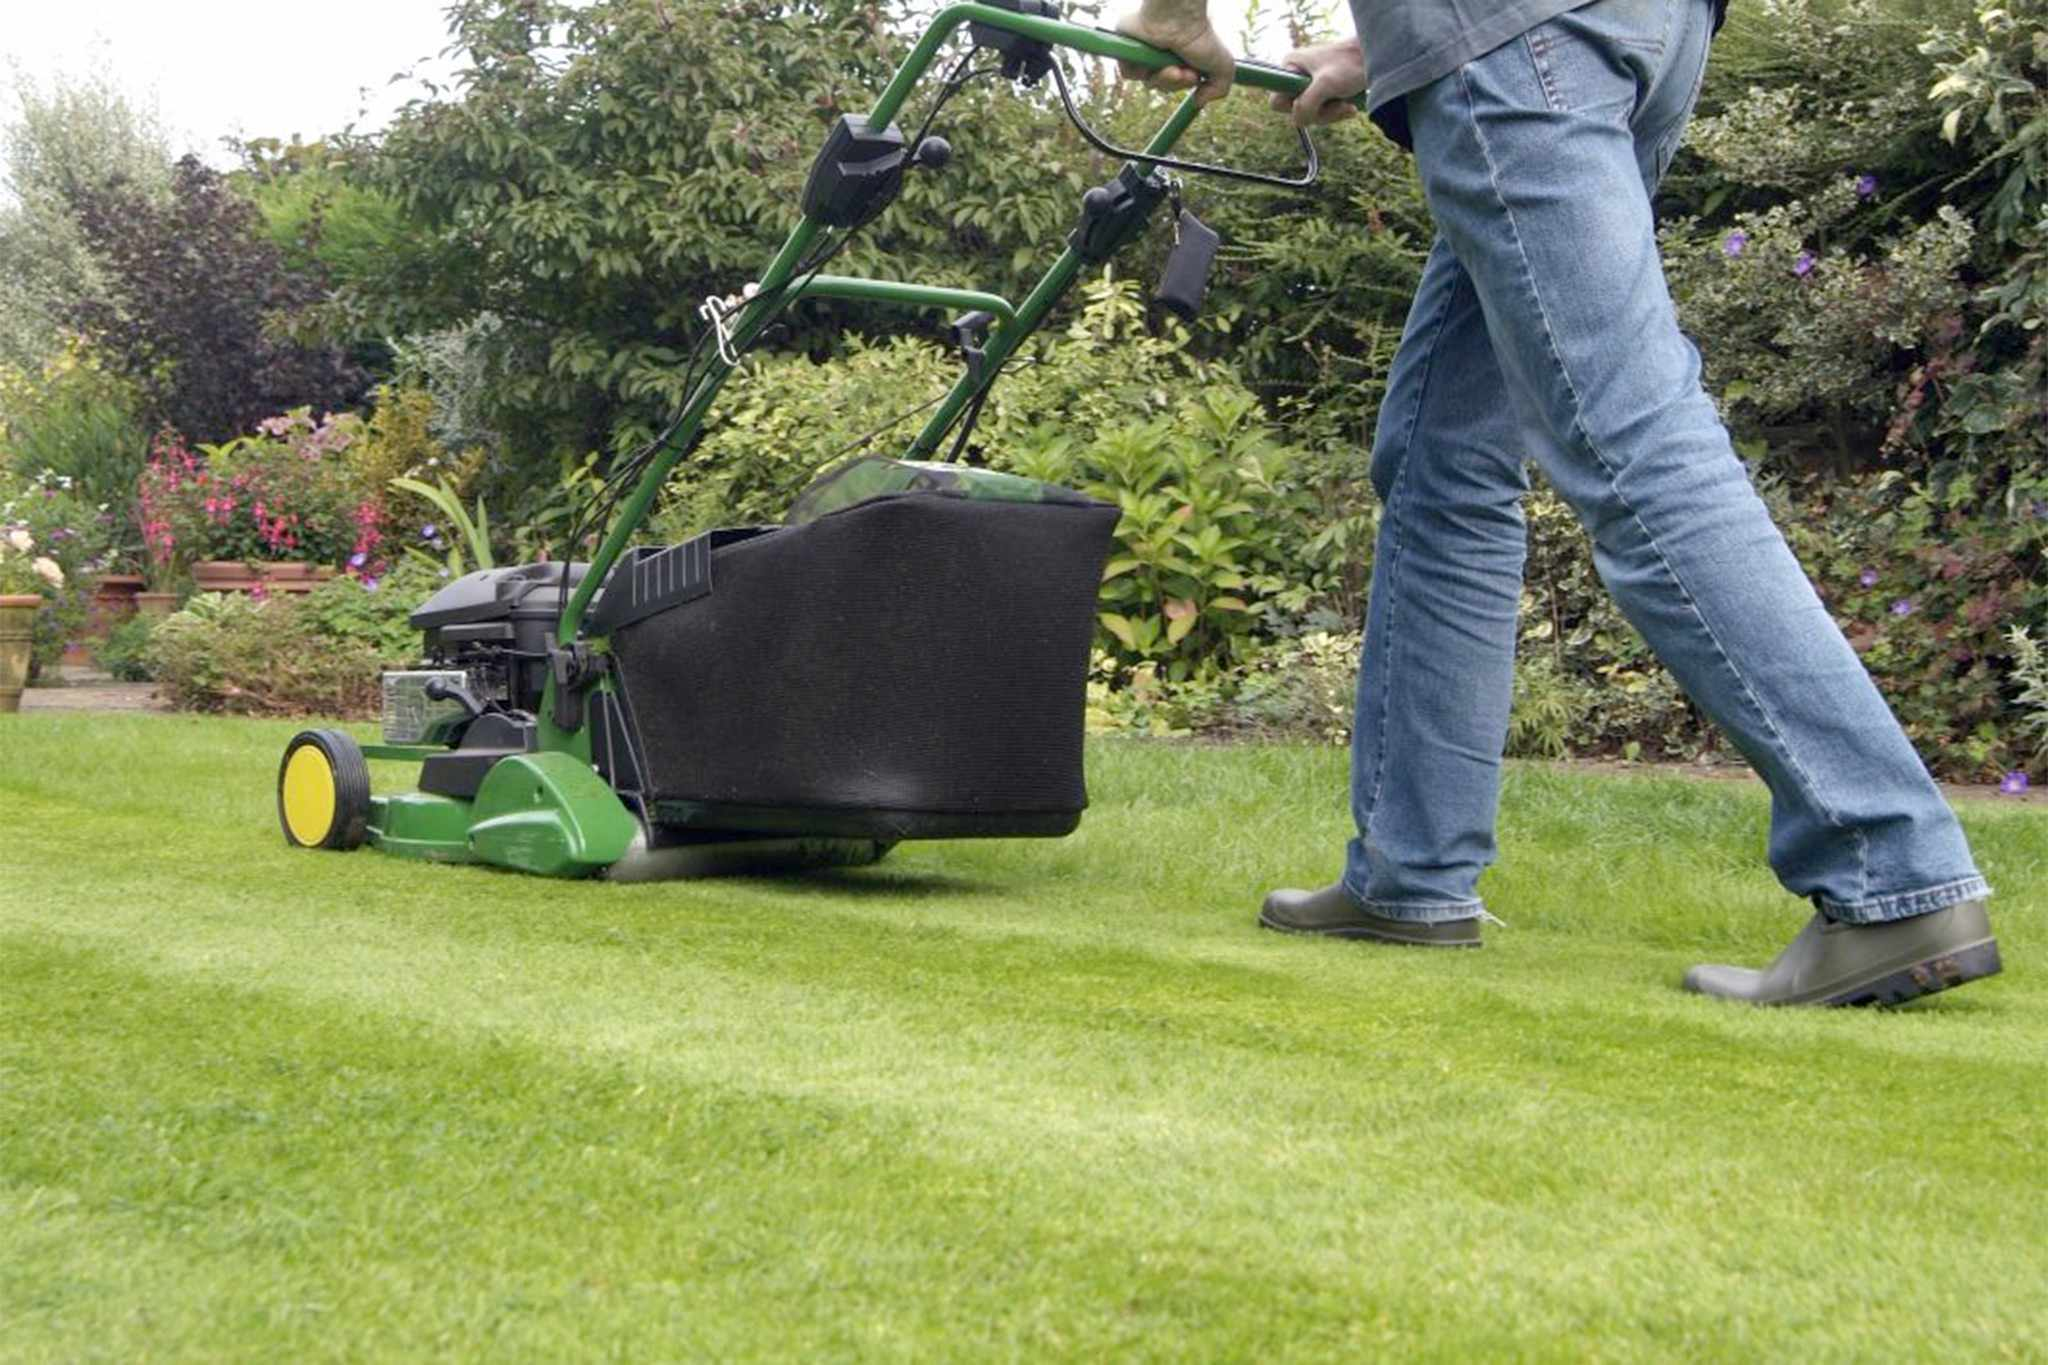 Mowing stripes onto a lawn